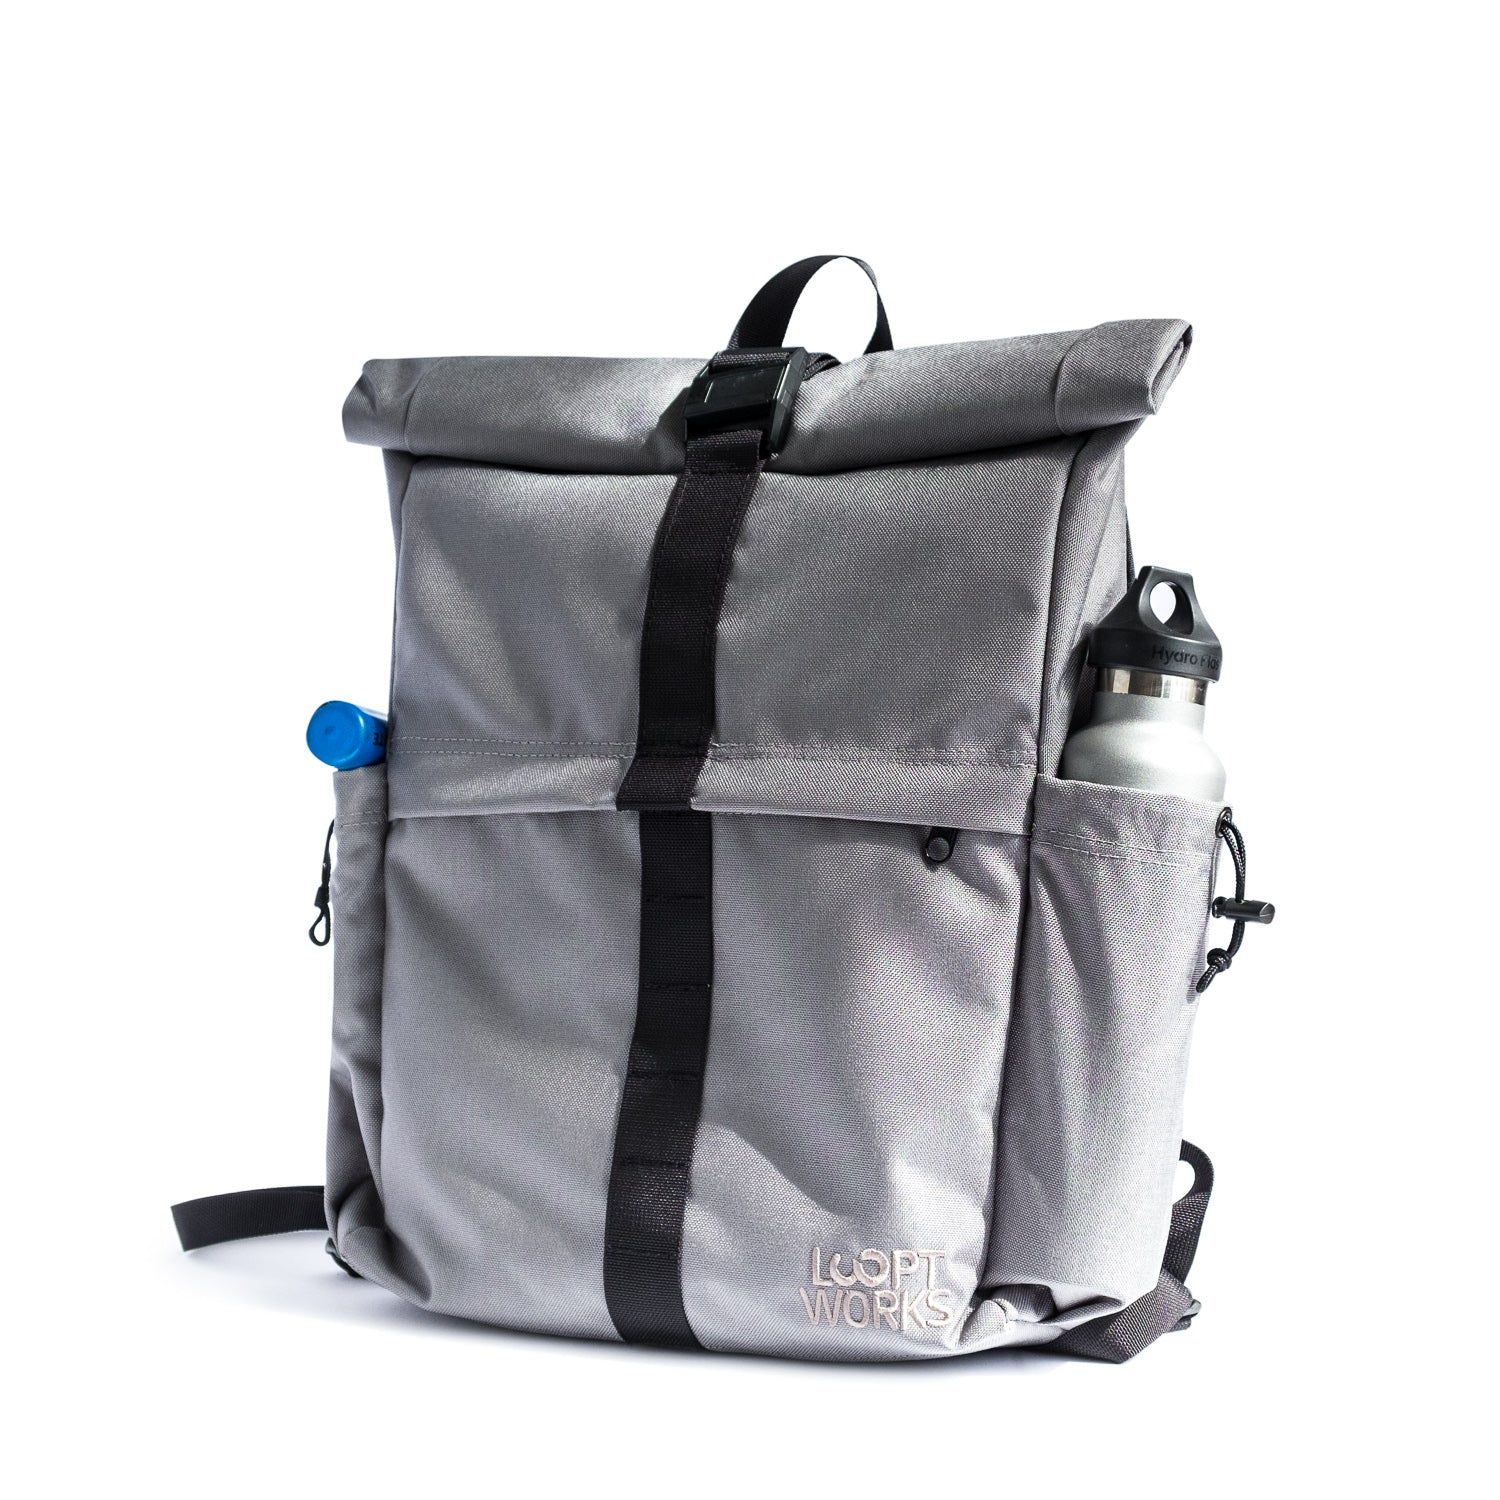 Going Rolltop Backpack - Gray